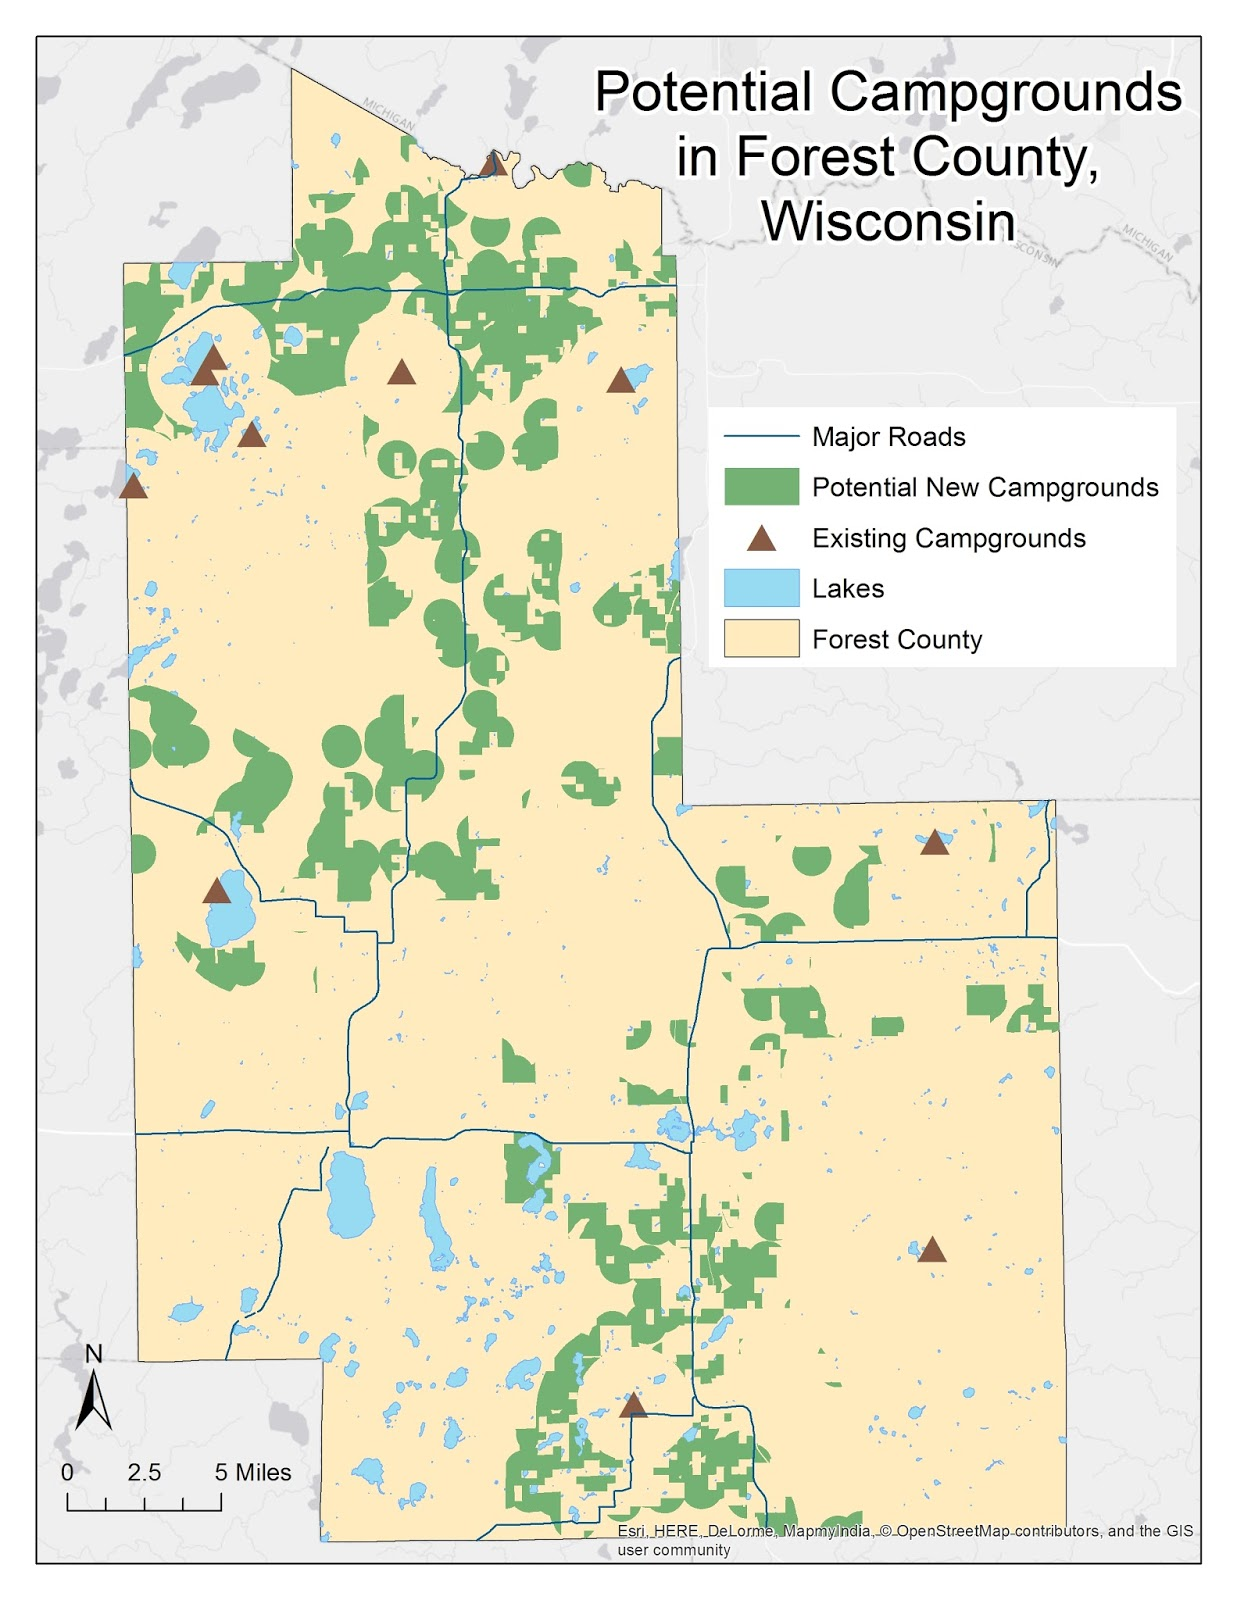 final map portraying areas for potential new campgrounds in forest county wisconsin